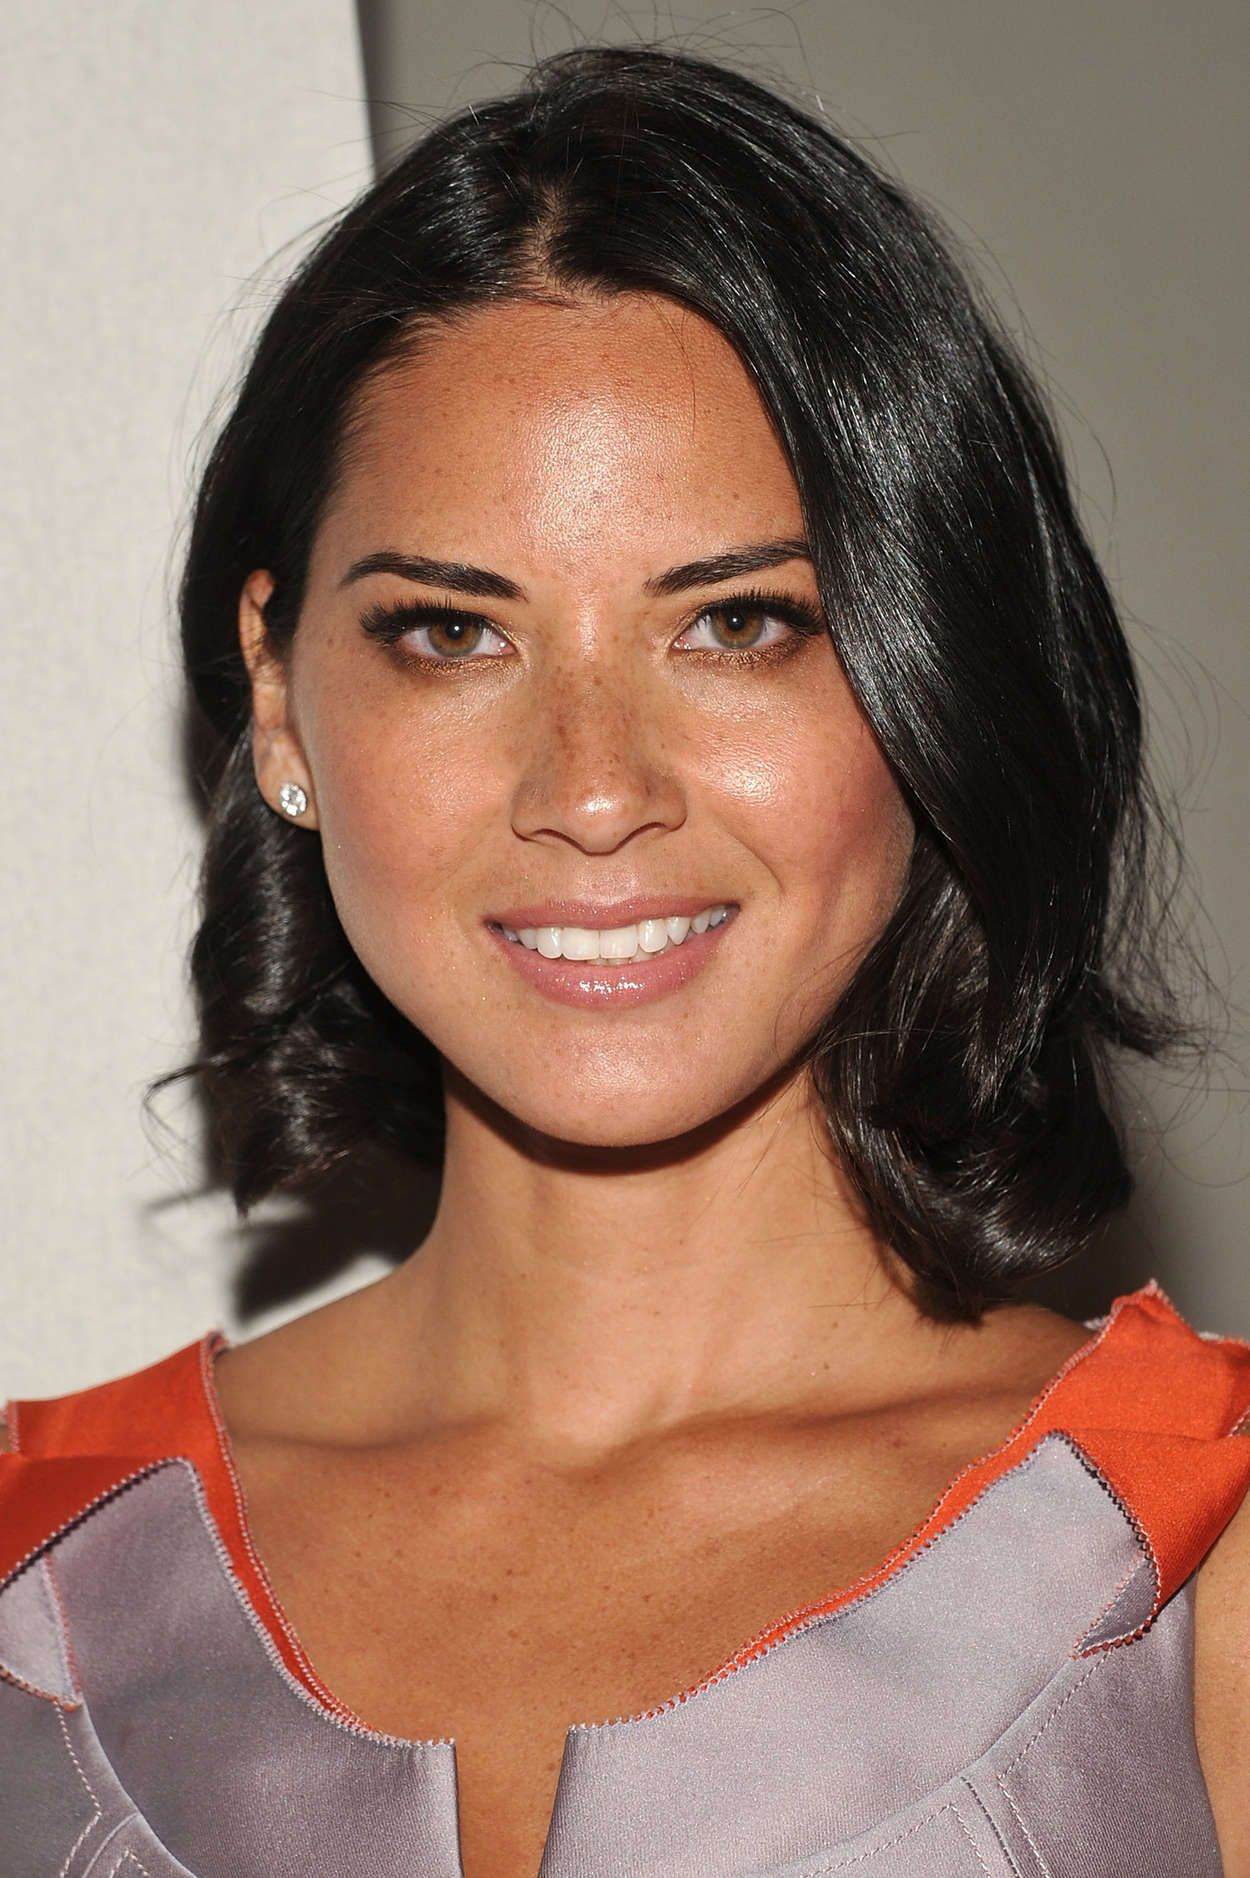 Hacked Olivia Munn nude (53 photo), Sexy, Fappening, Selfie, legs 2020